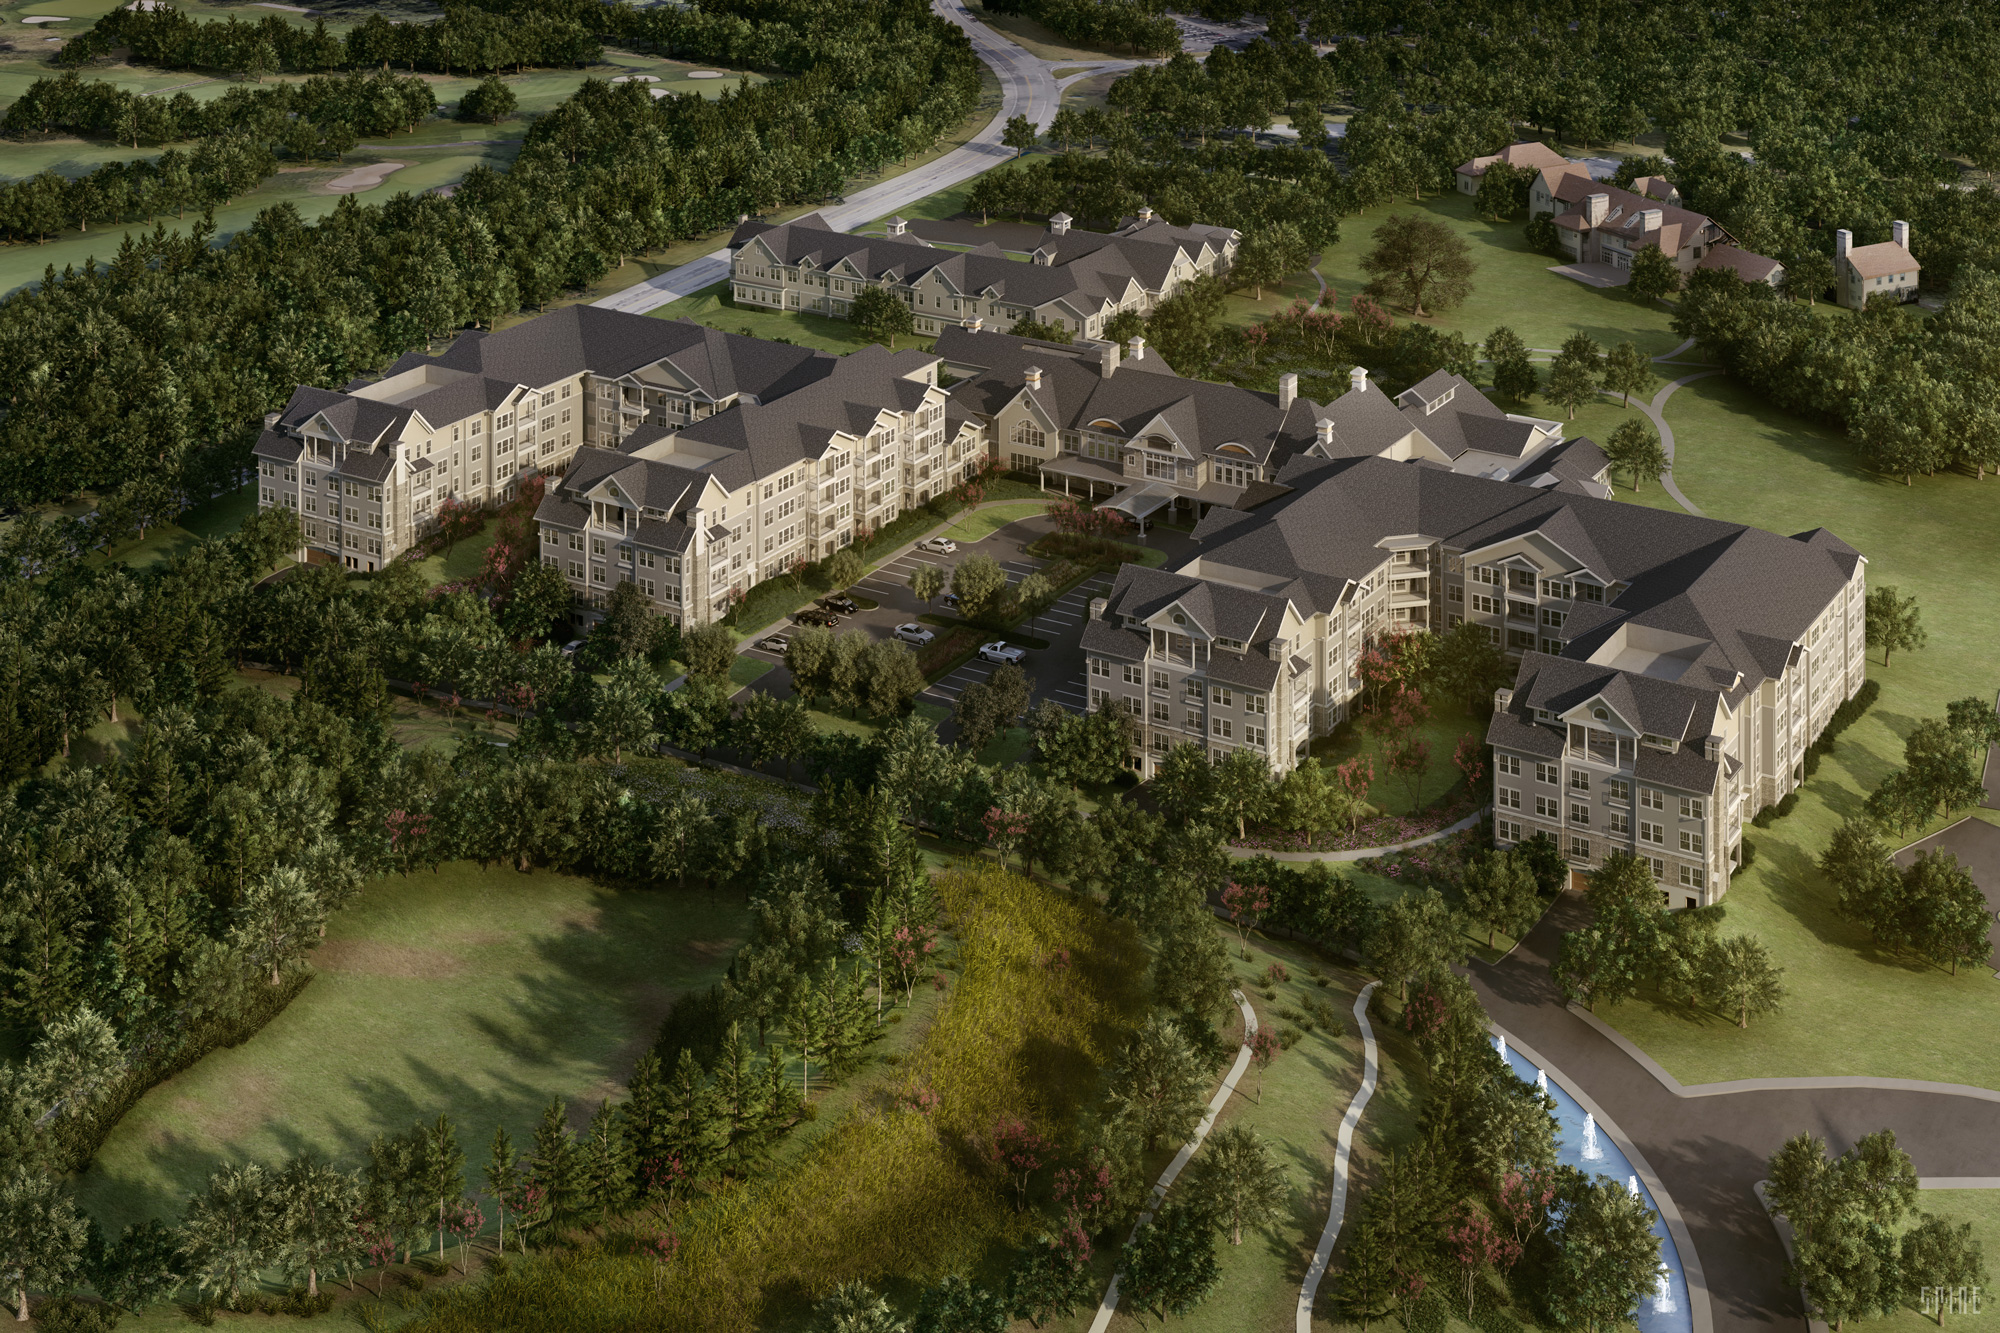 Rendering of Broadview Senior Living, a retirement community by LCS Development